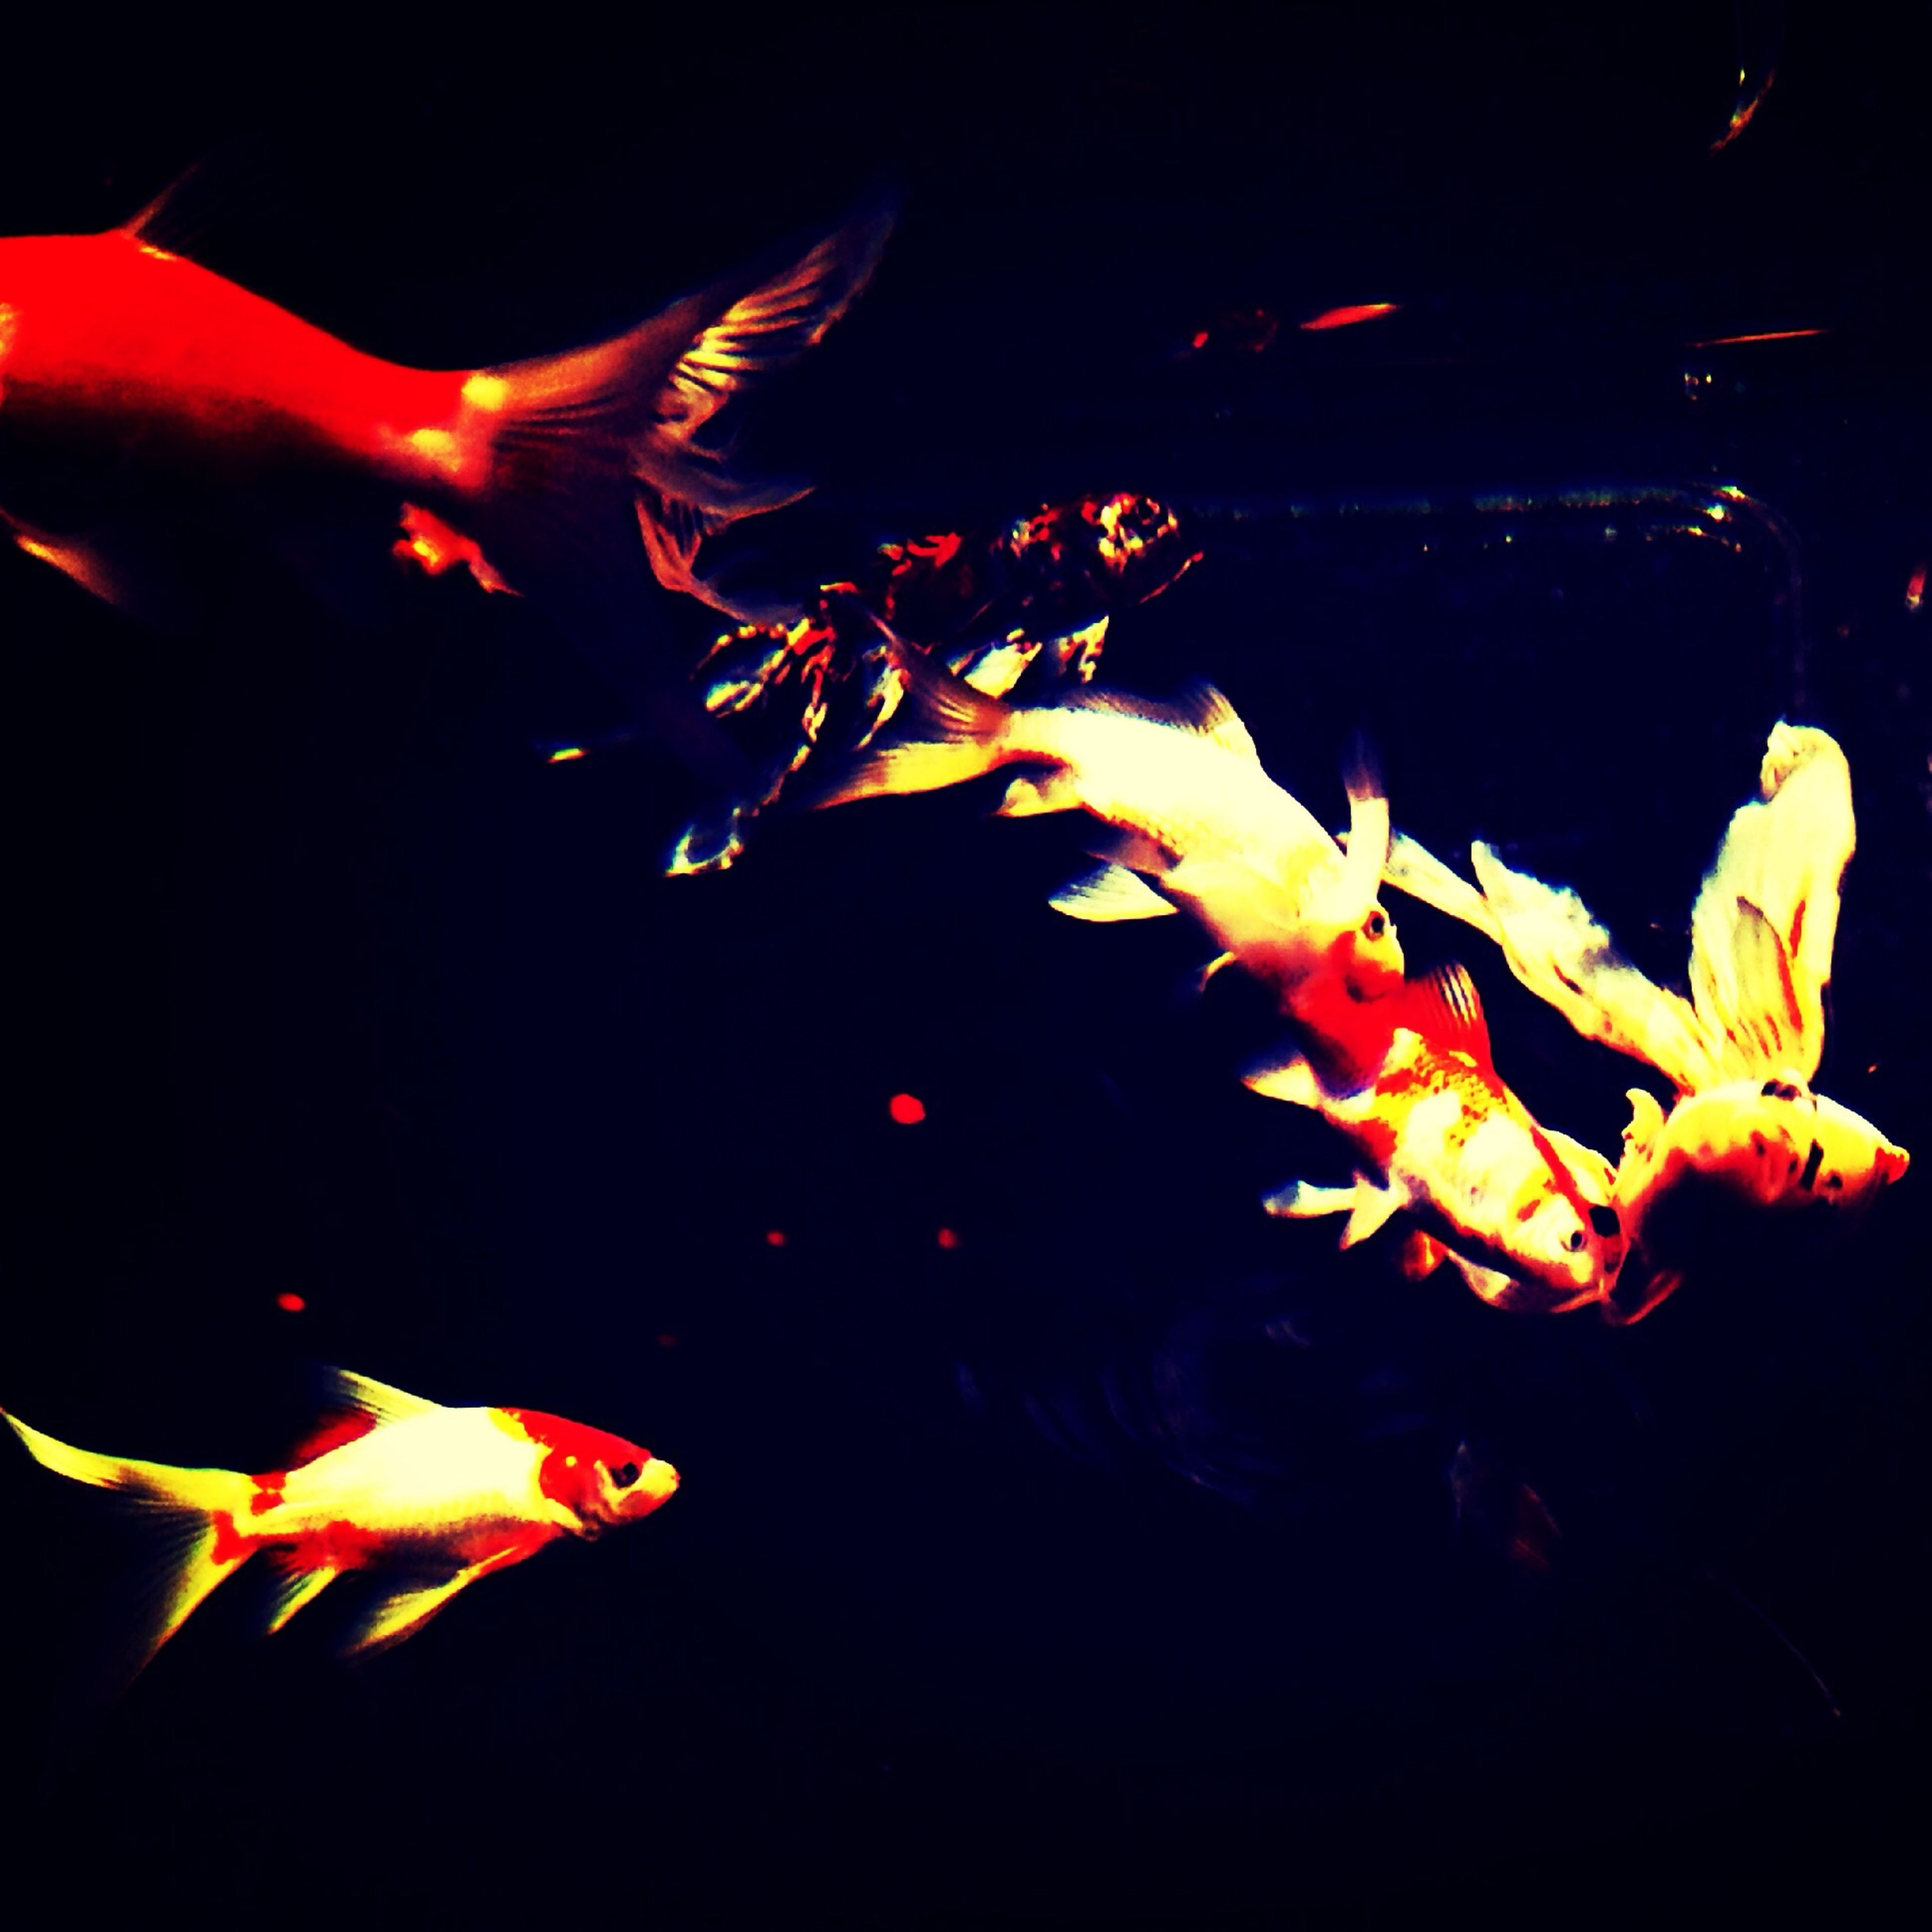 animal themes, sea life, orange color, fish, night, underwater, close-up, black background, burning, glowing, studio shot, swimming, motion, wildlife, flame, no people, fire - natural phenomenon, indoors, water, animals in the wild